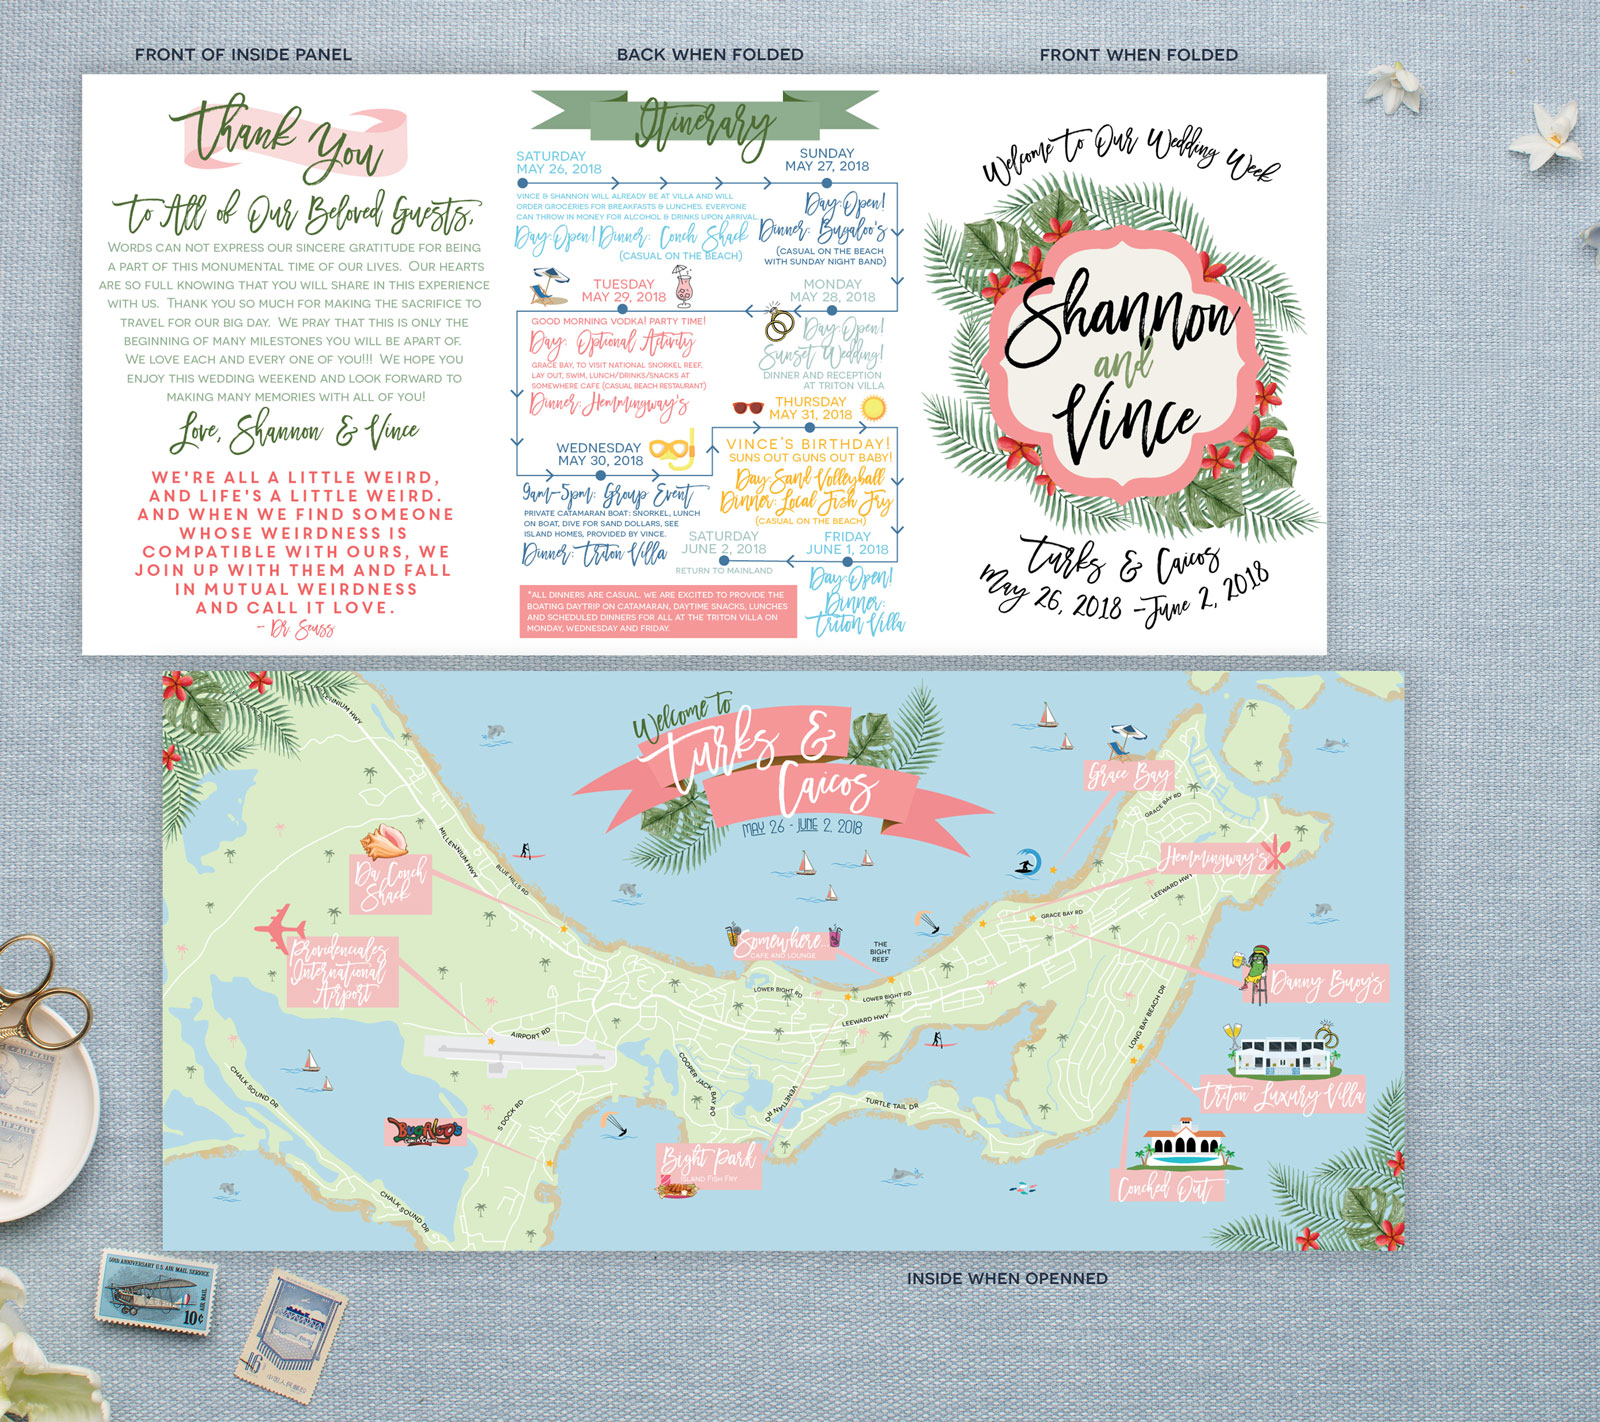 Turks and Caicos Wedding Map - Destination Wedding - Feathered Heart Prints